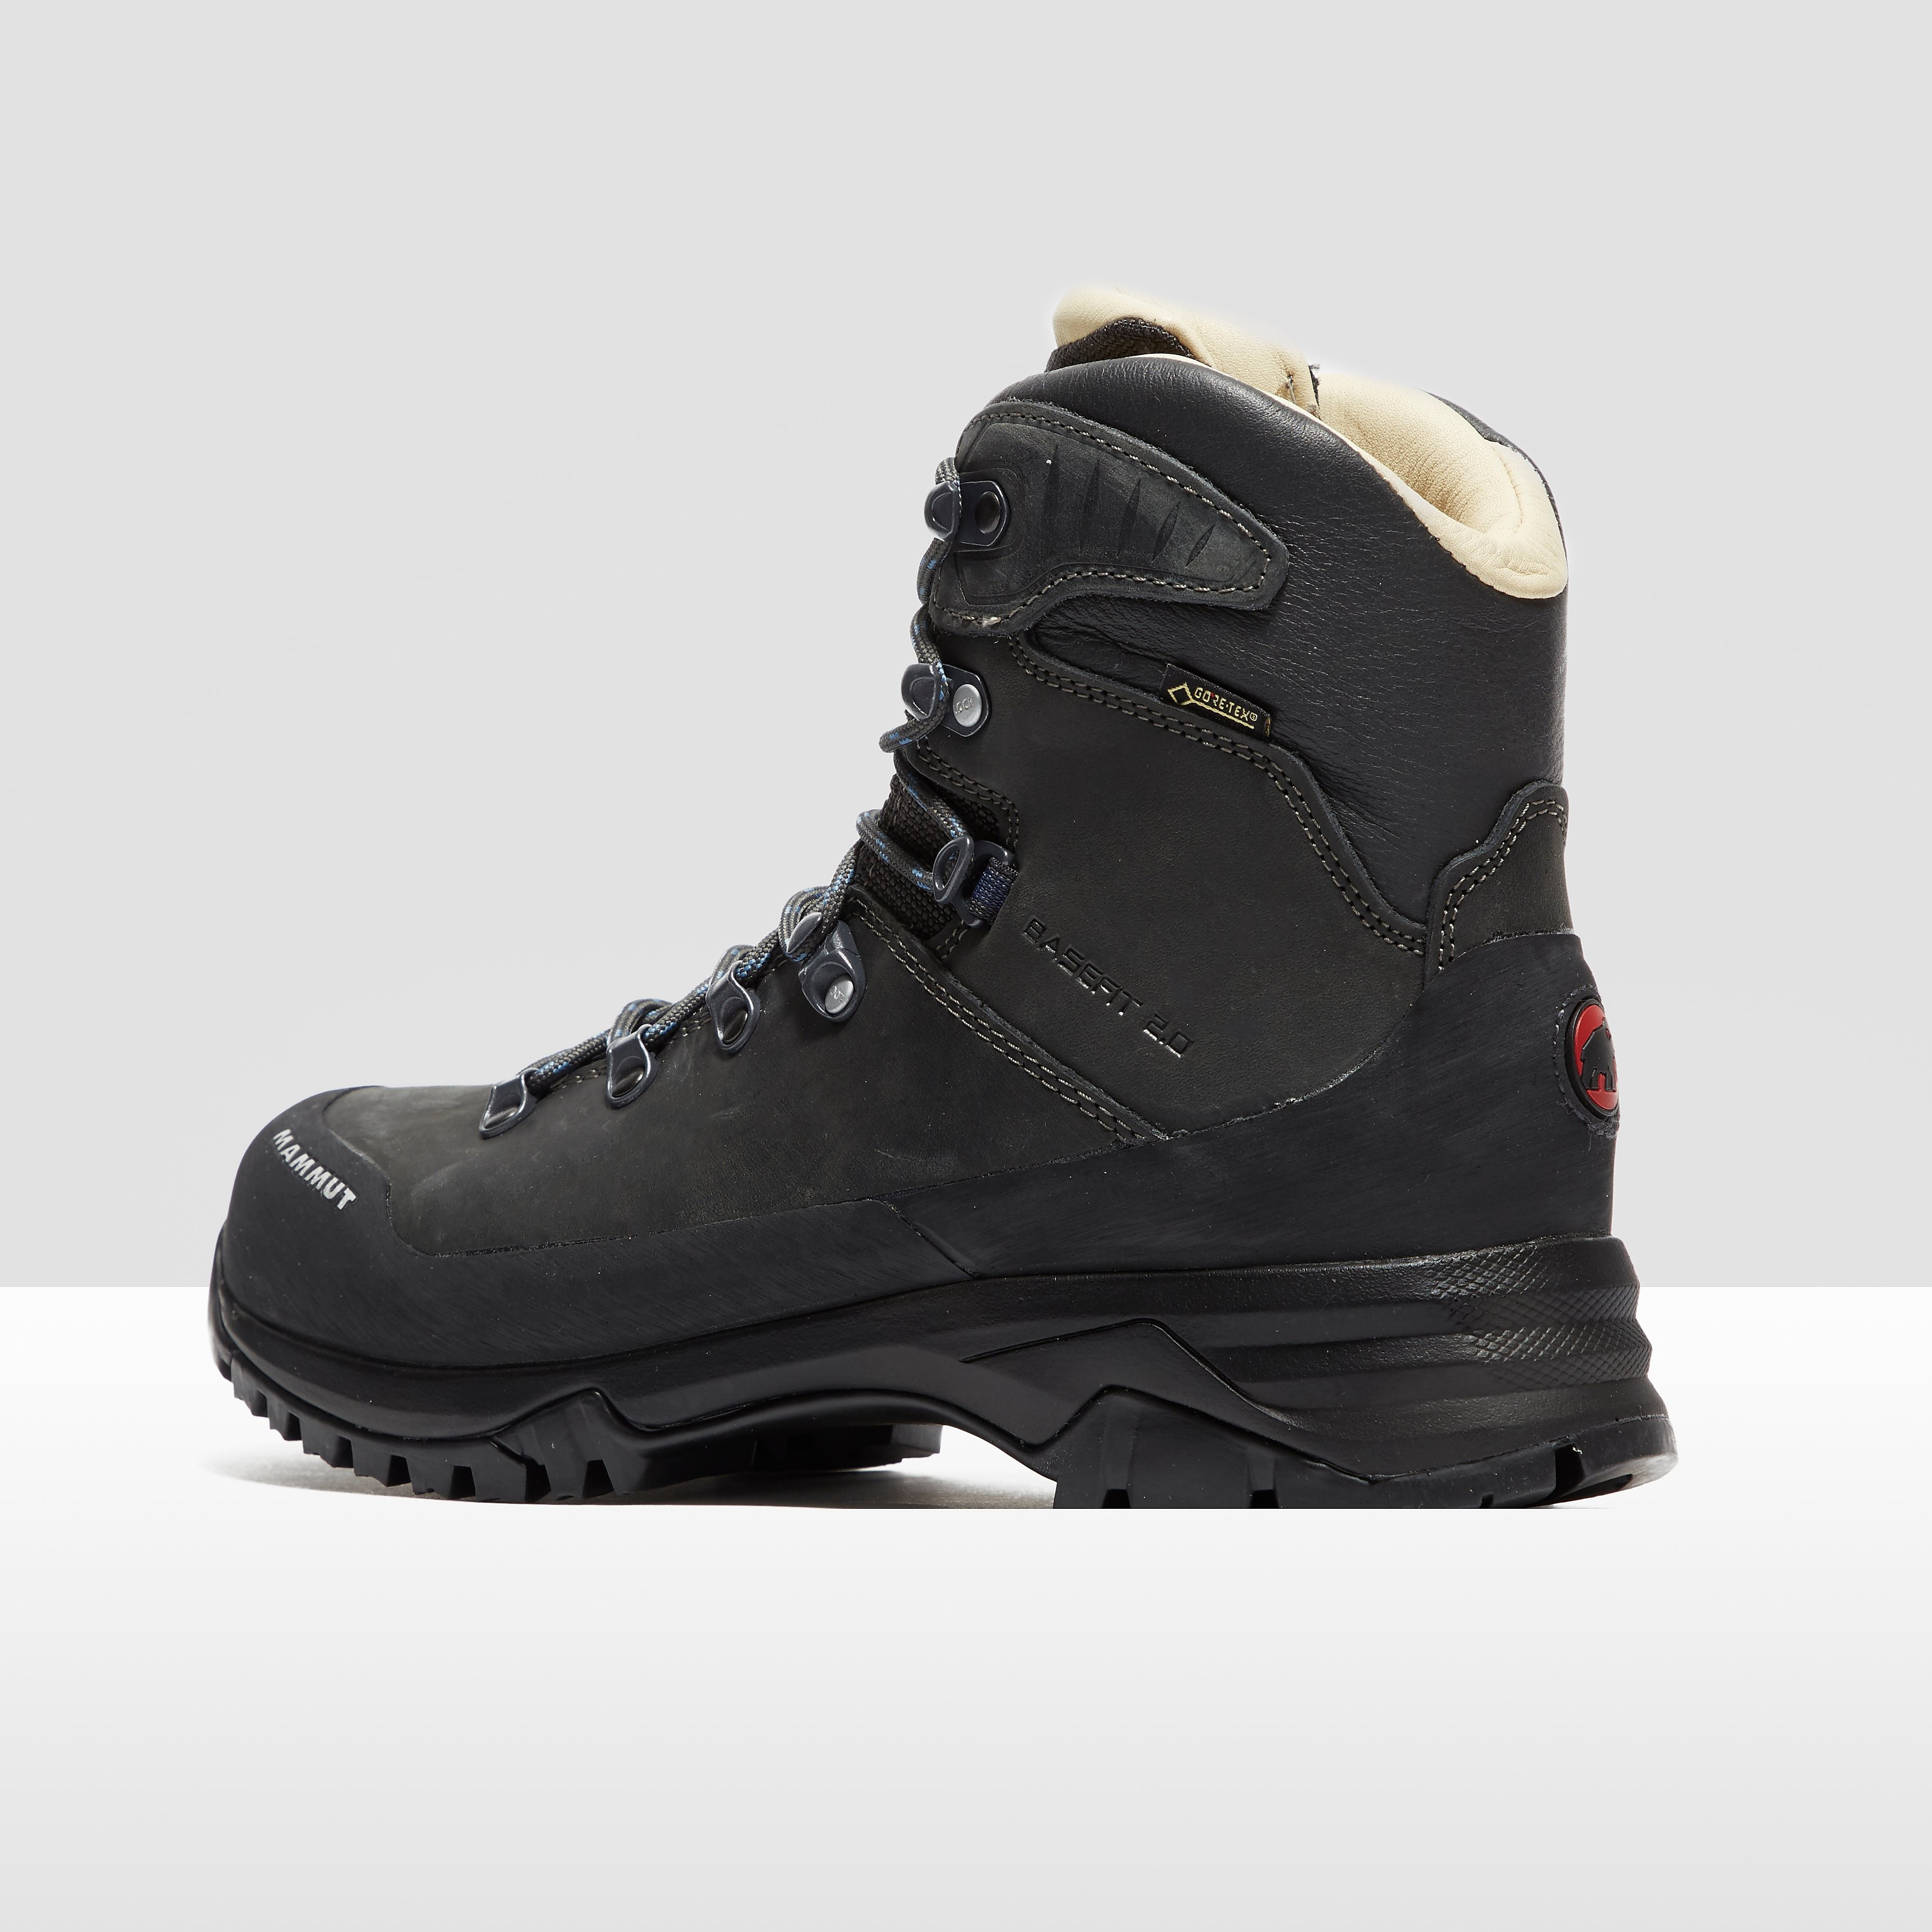 Mammut Trovat Guide High GTX Men's Boots